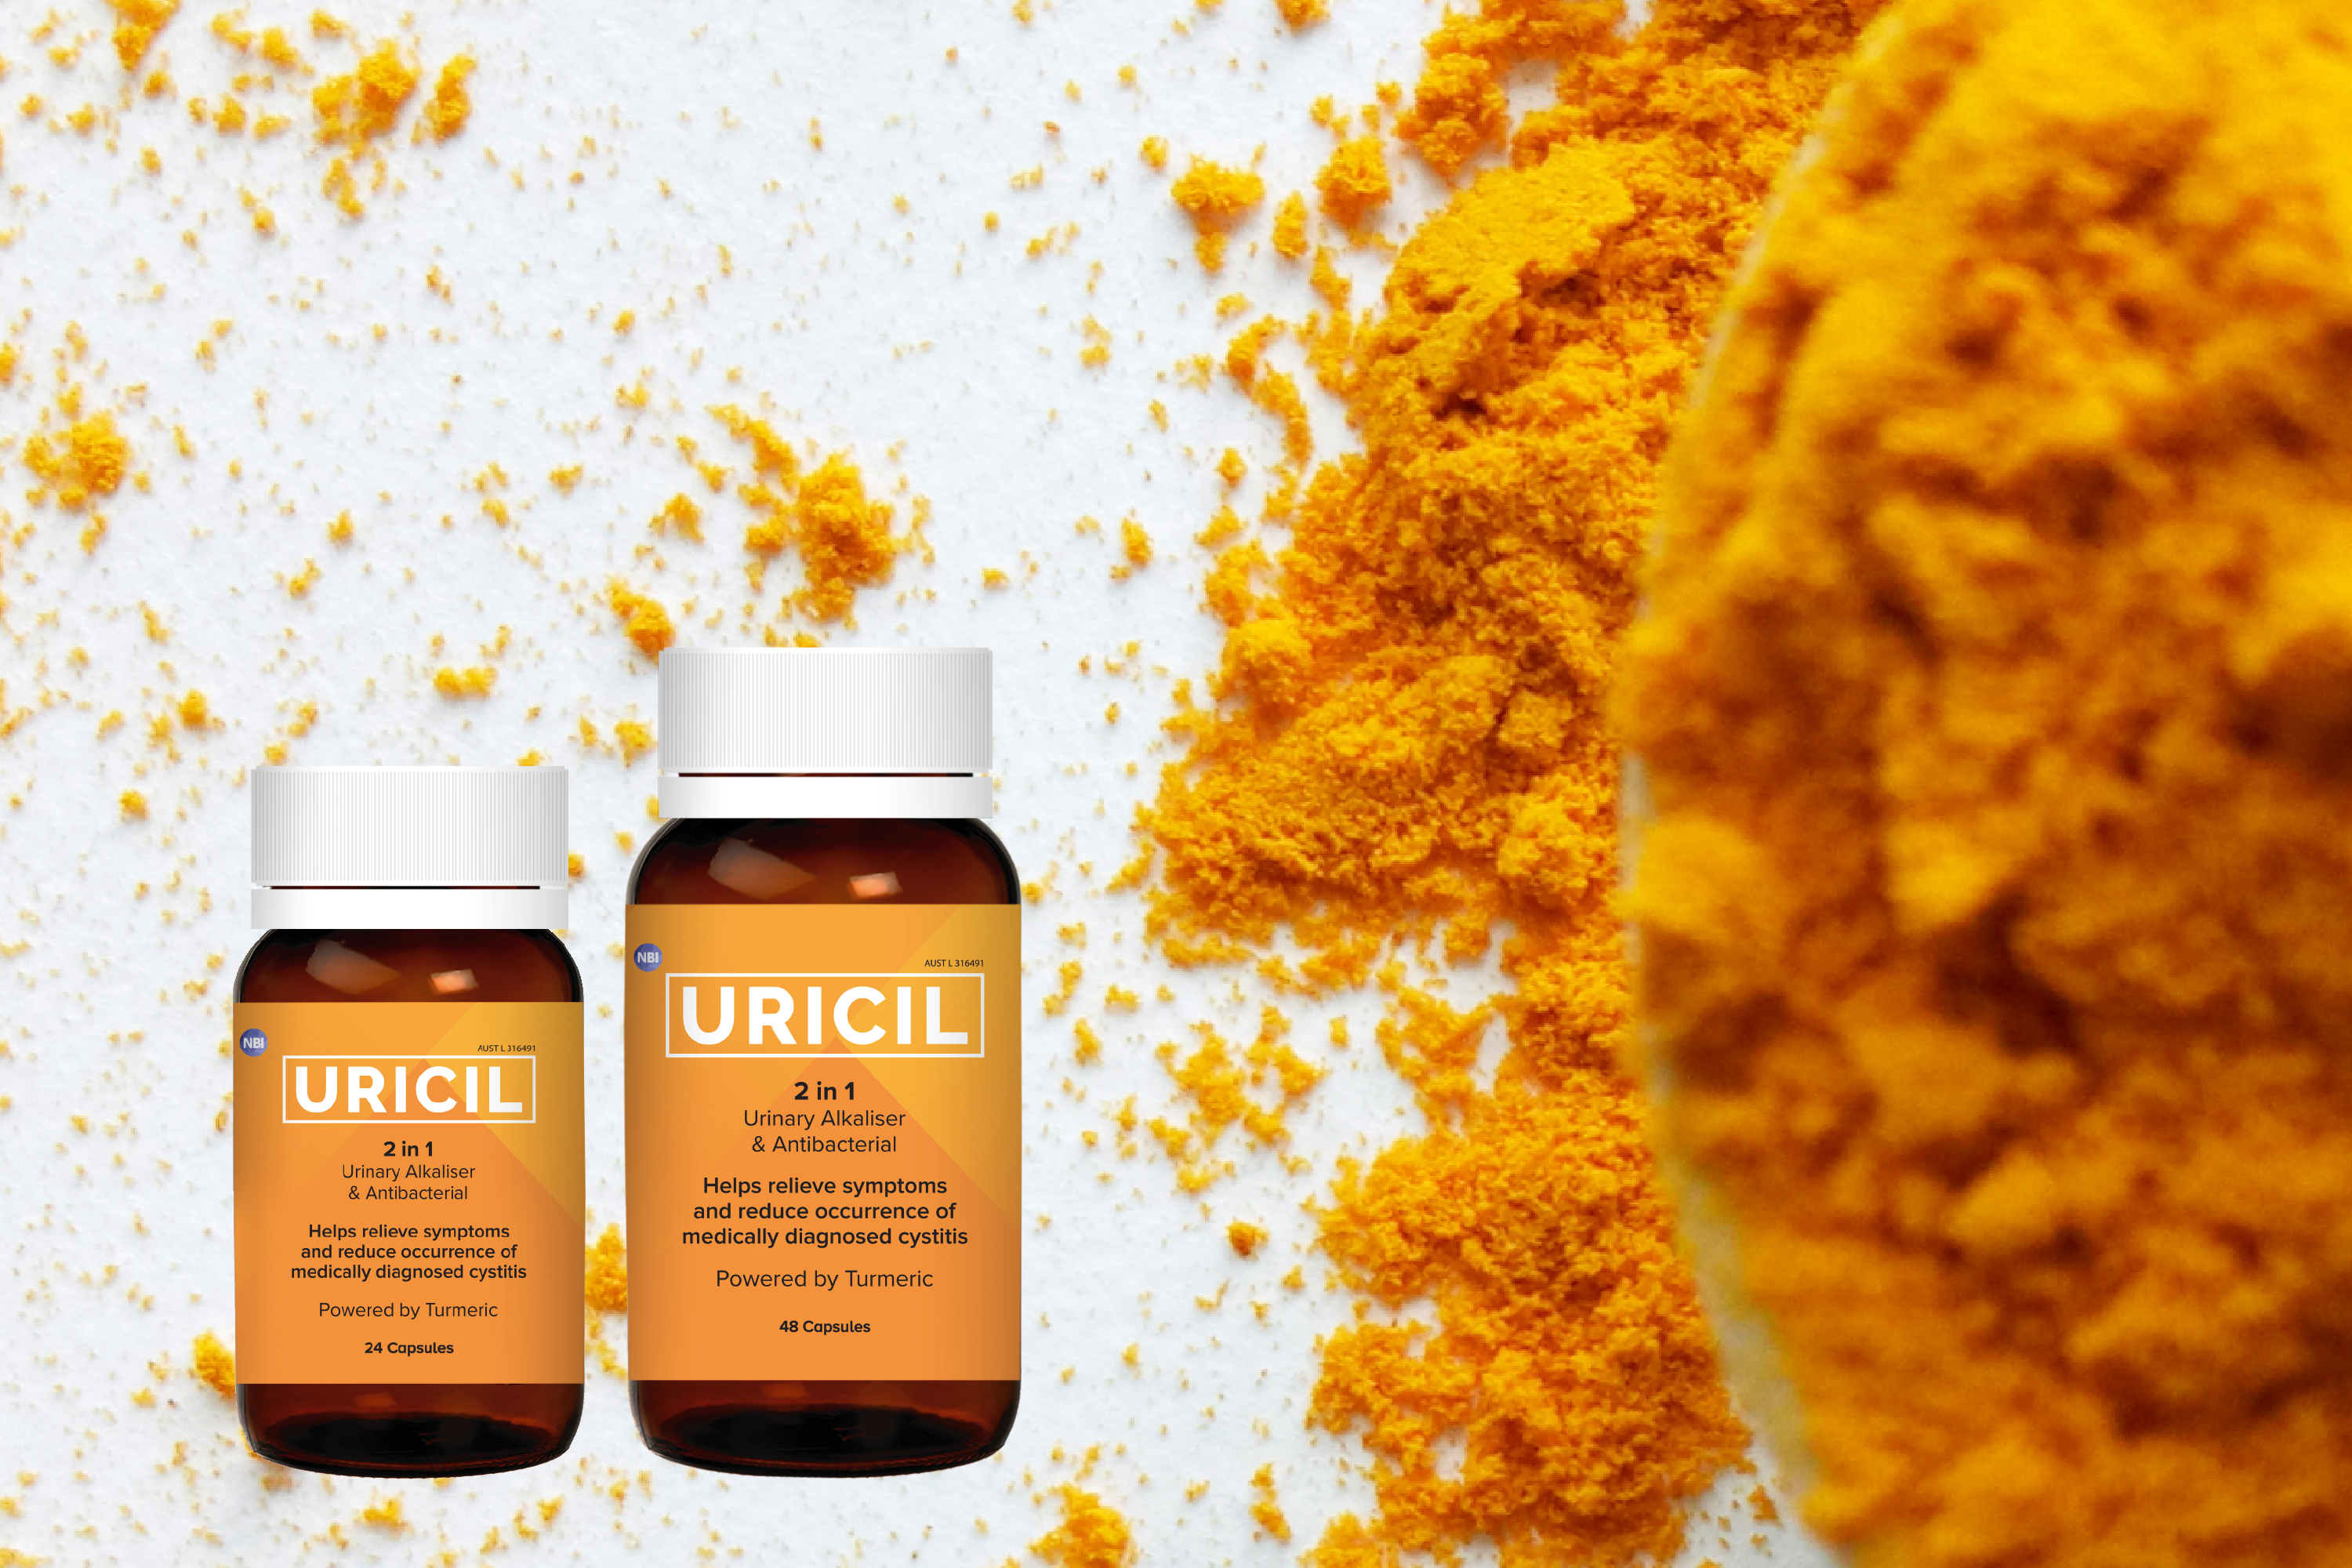 CAN TURMERIC HELP FIGHT BLADDER INFECTIONS?